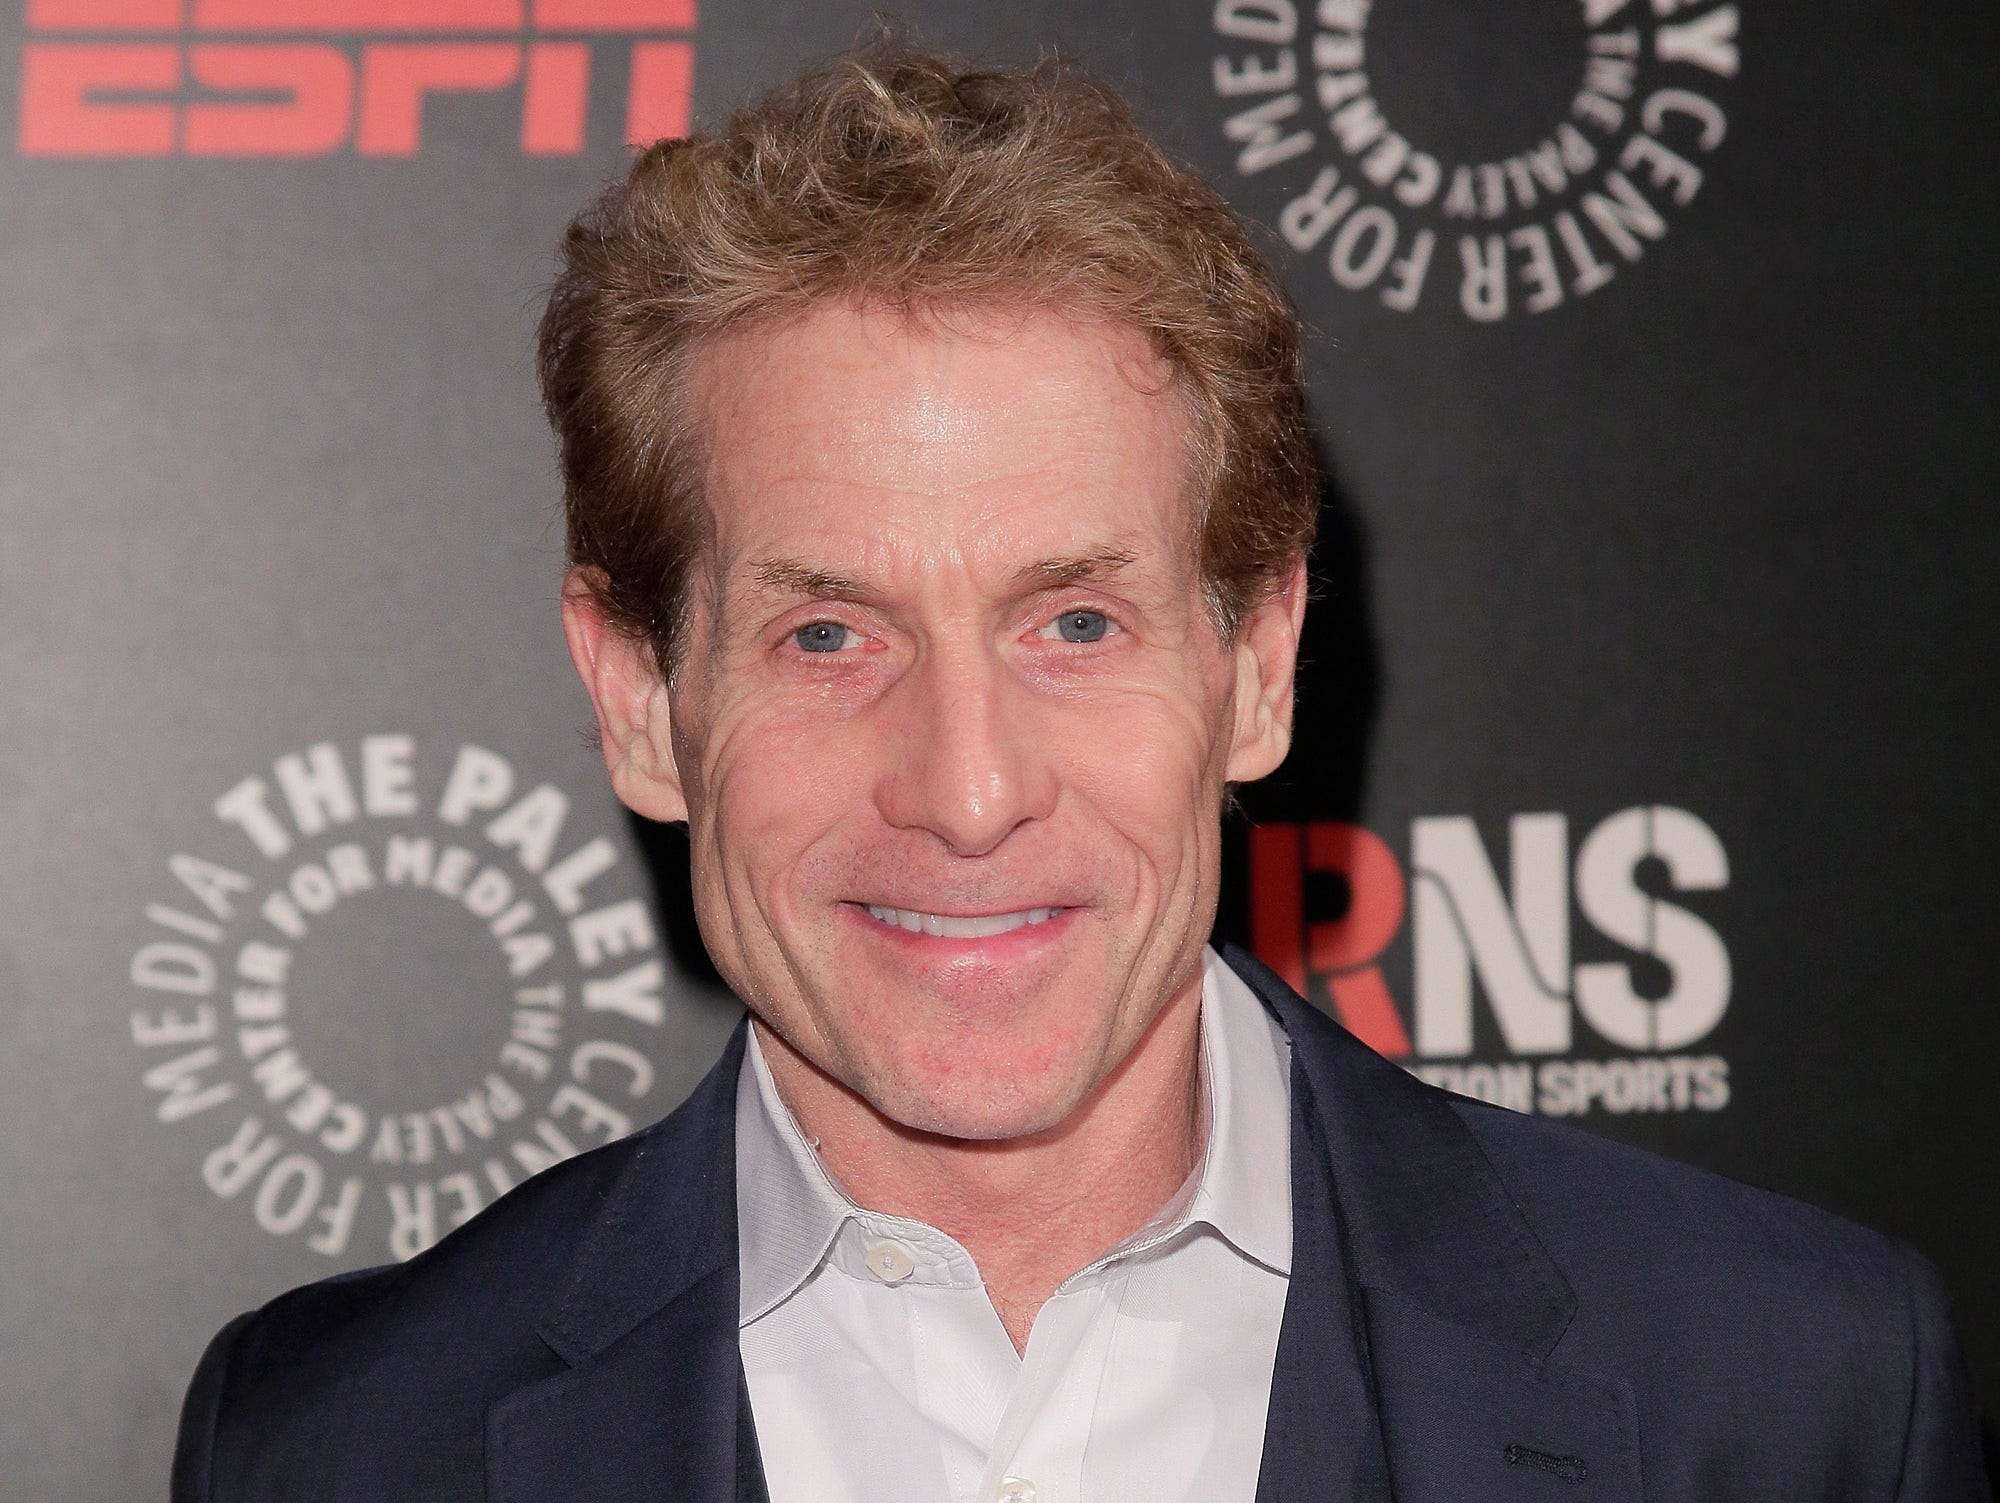 Fox Sports reportedly gave Skip Bayless a $32 million contract to keep him from going back to ESPN